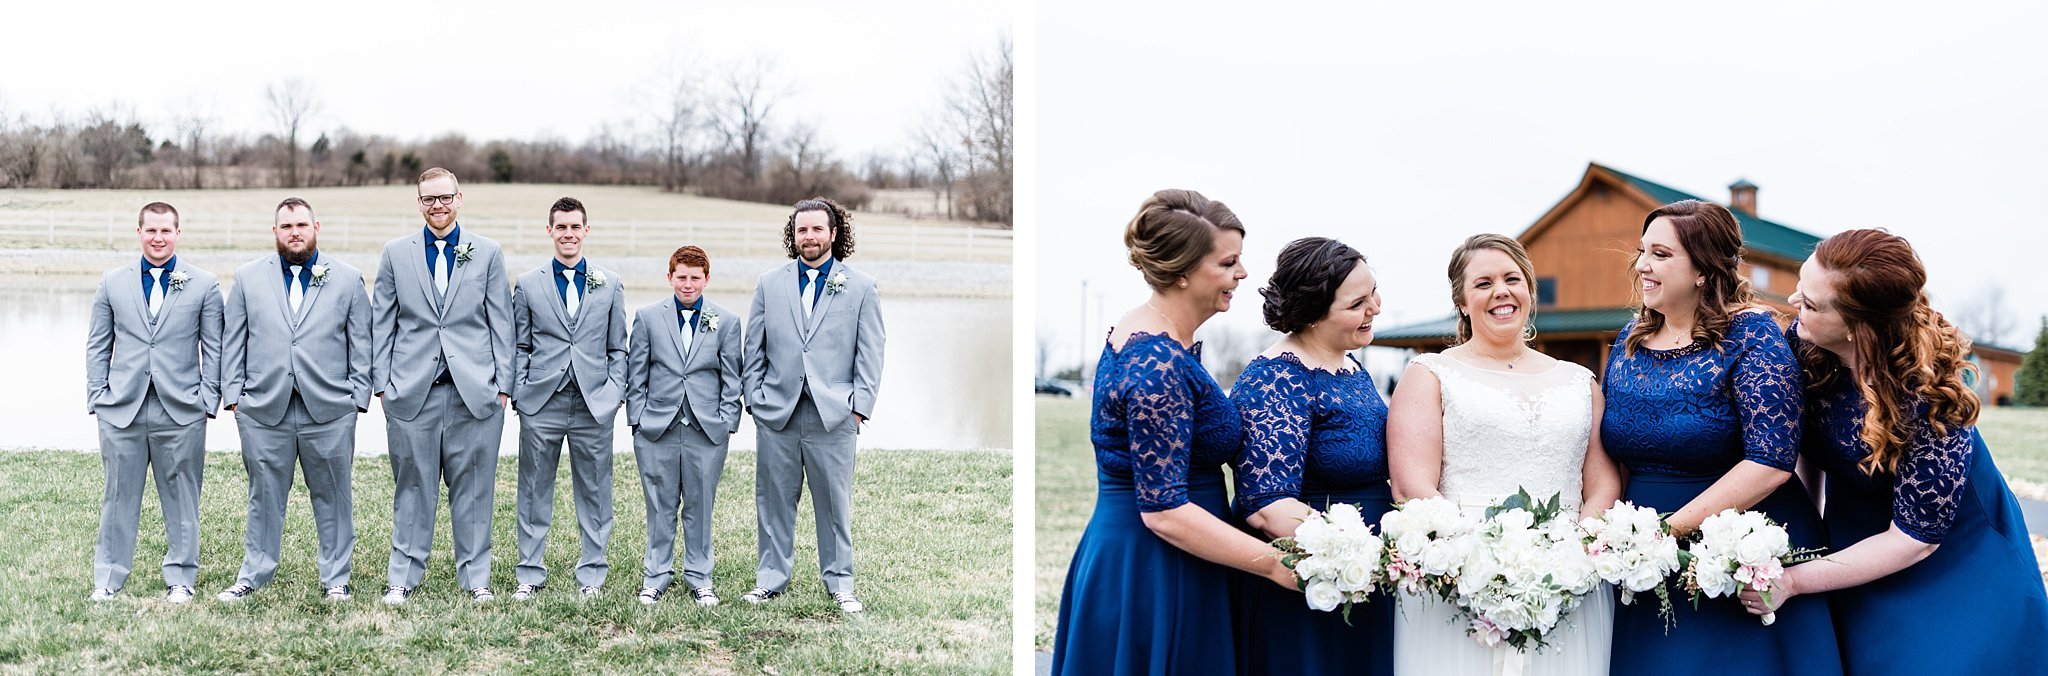 cincinnati wedding photographer53.jpg